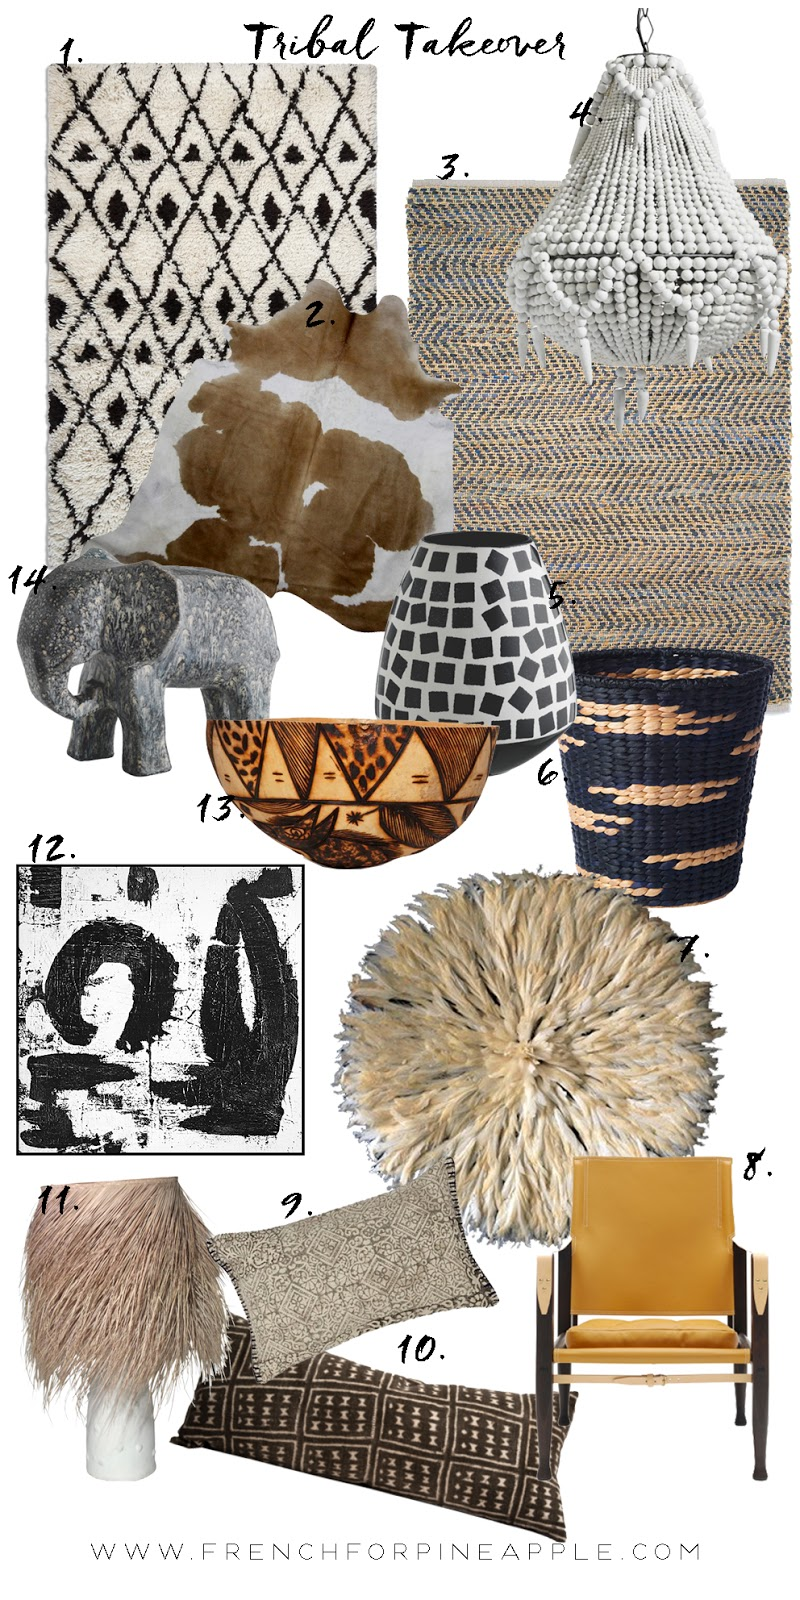 Get the Soft Tribal look the easy way by following some of my tips! Think muddy browns, warm tans and caramels and texture by the bucket-load. Use animal print, hides and sheepskins, and natural fibres like jute, mudcloth and leather. But remember, don't go overboard - we want a nod to the trend, not a themed room!